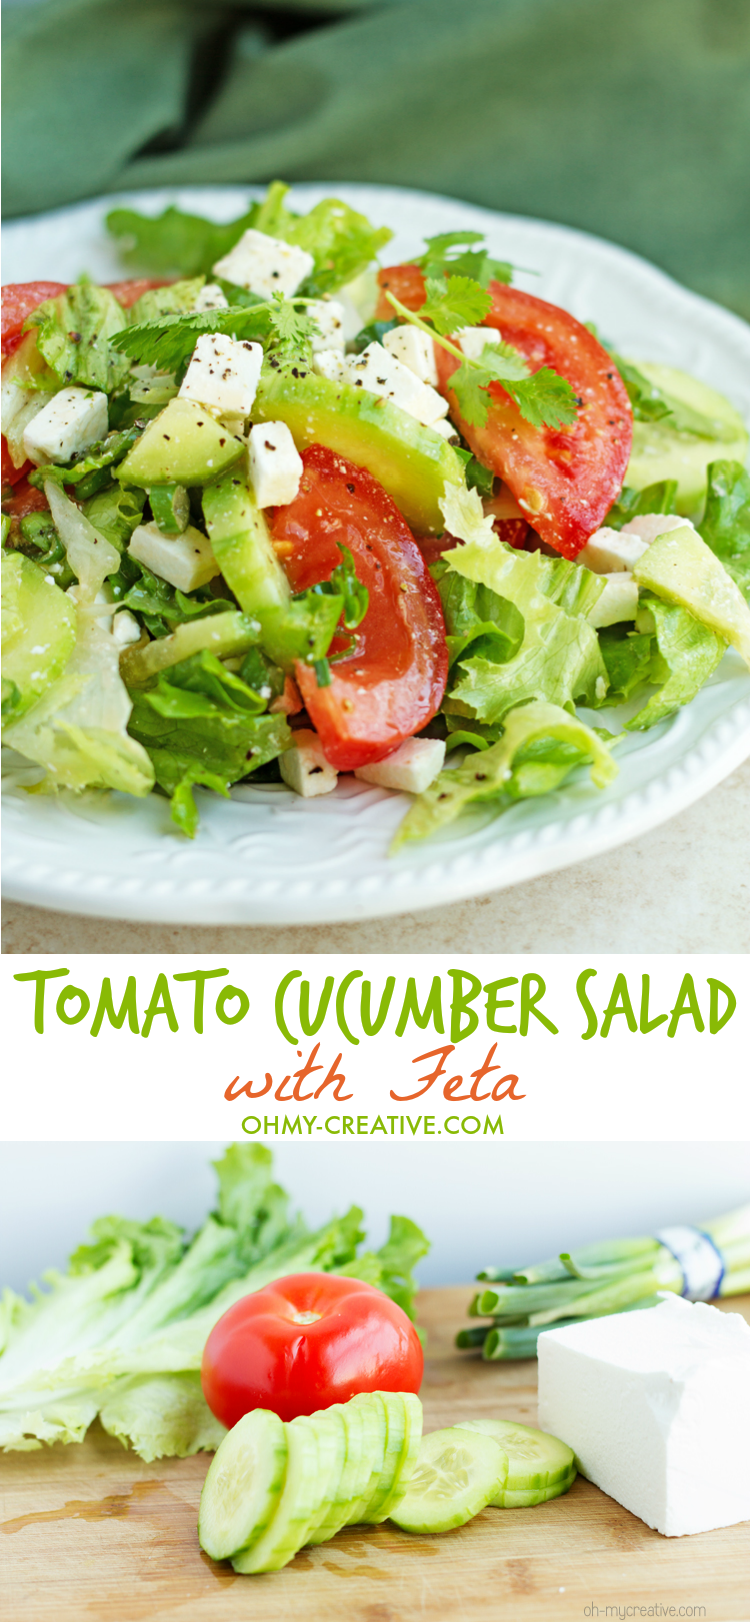 tomato cucumber salad with feta oh my creative. Black Bedroom Furniture Sets. Home Design Ideas